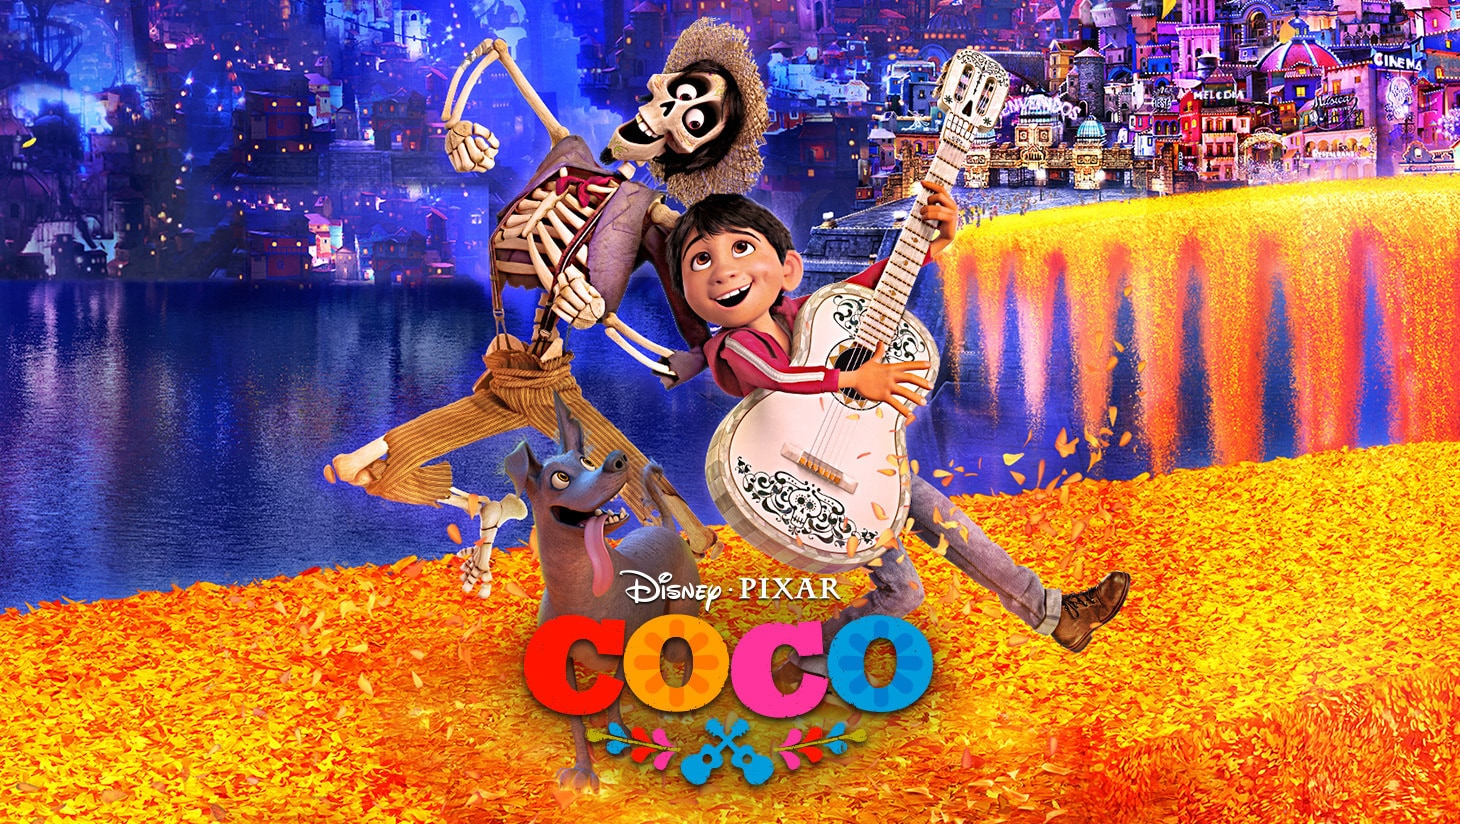 The animated characters of Hector, Dante and Miguel with a guitar singing from Disney and Pixar's Coco movie